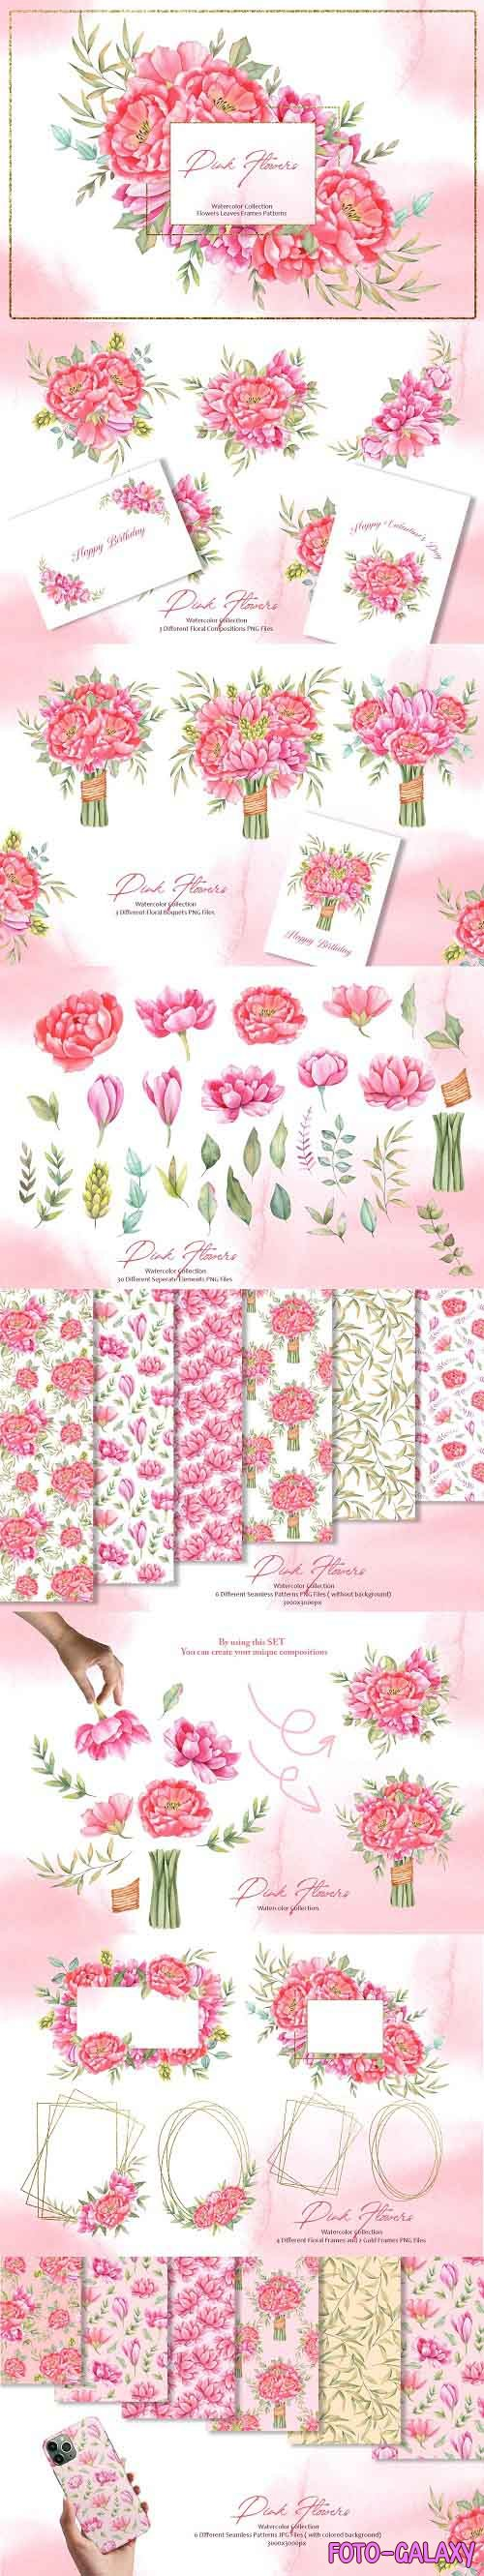 Watercolor Pink Flowers Collection - 5736669